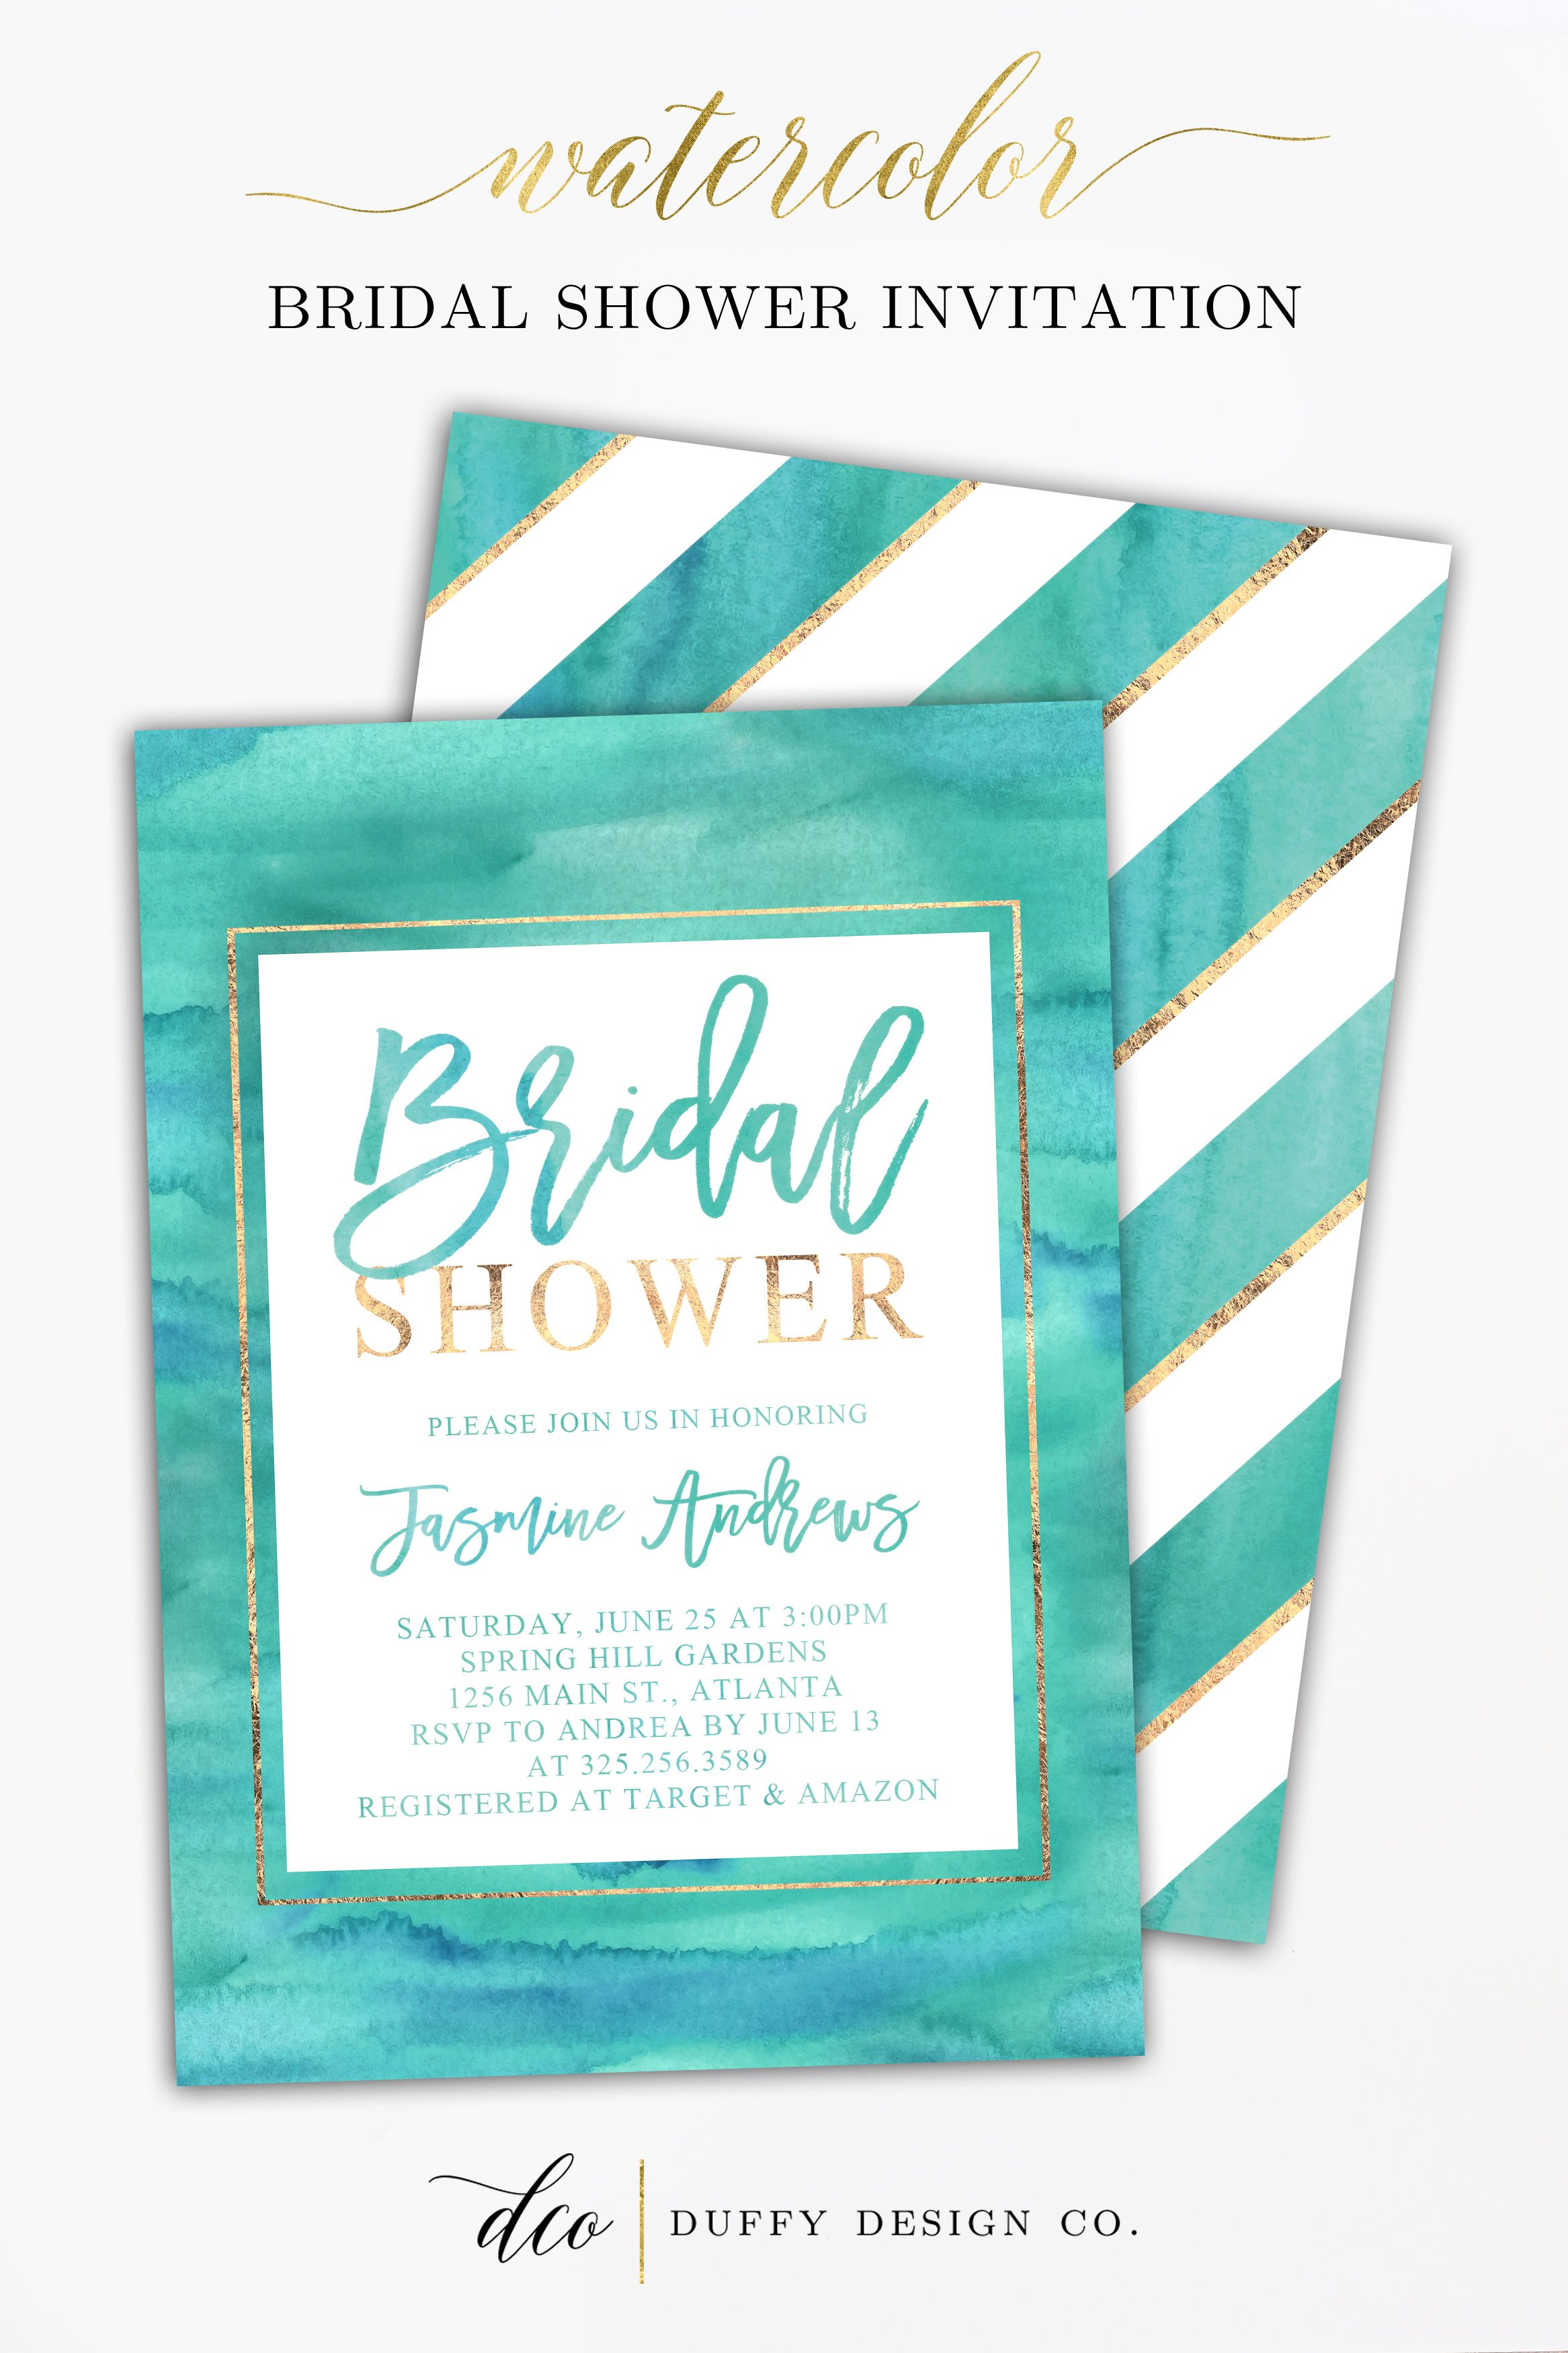 Bridal Shower Invitation, Bridal Shower Invite, Aqua Teal Gold ...